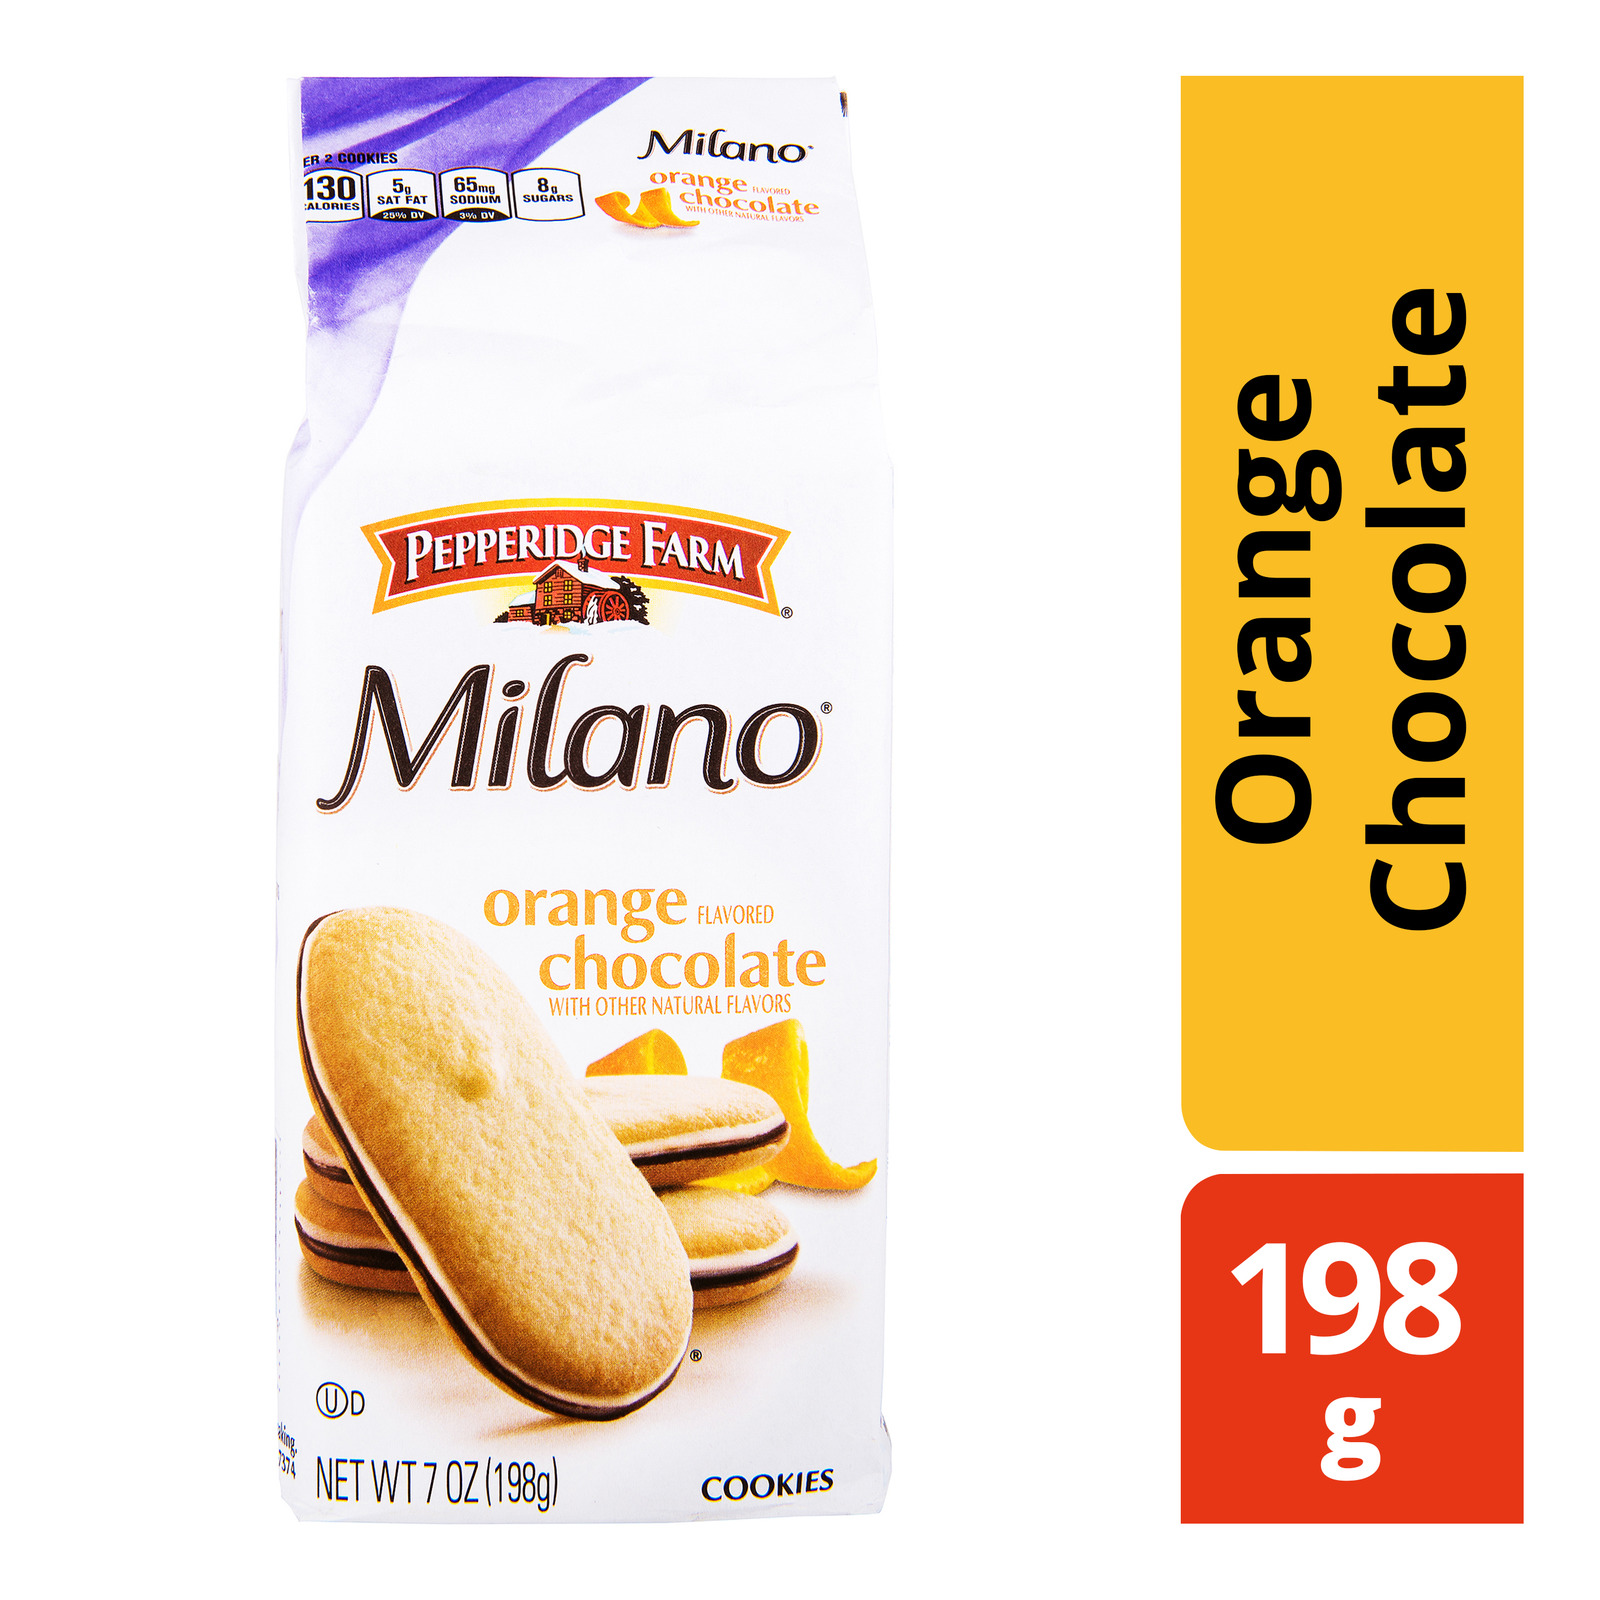 Pepperidge Farm Mint Chocolate Milano Distinctive Cookies